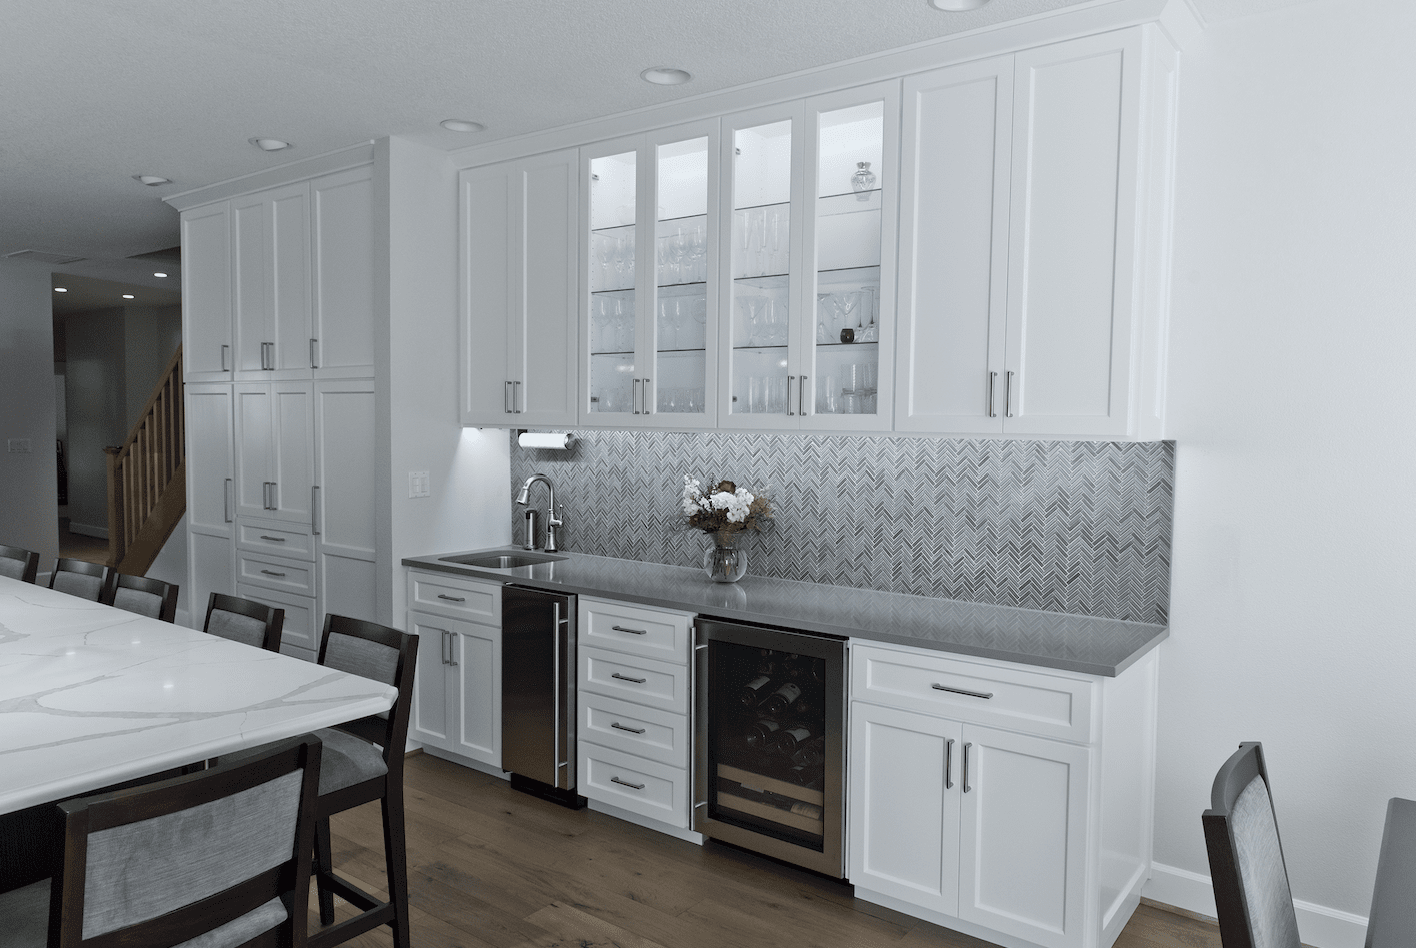 Tile backsplash installation in Lake Oswego, OR from All Surfaces